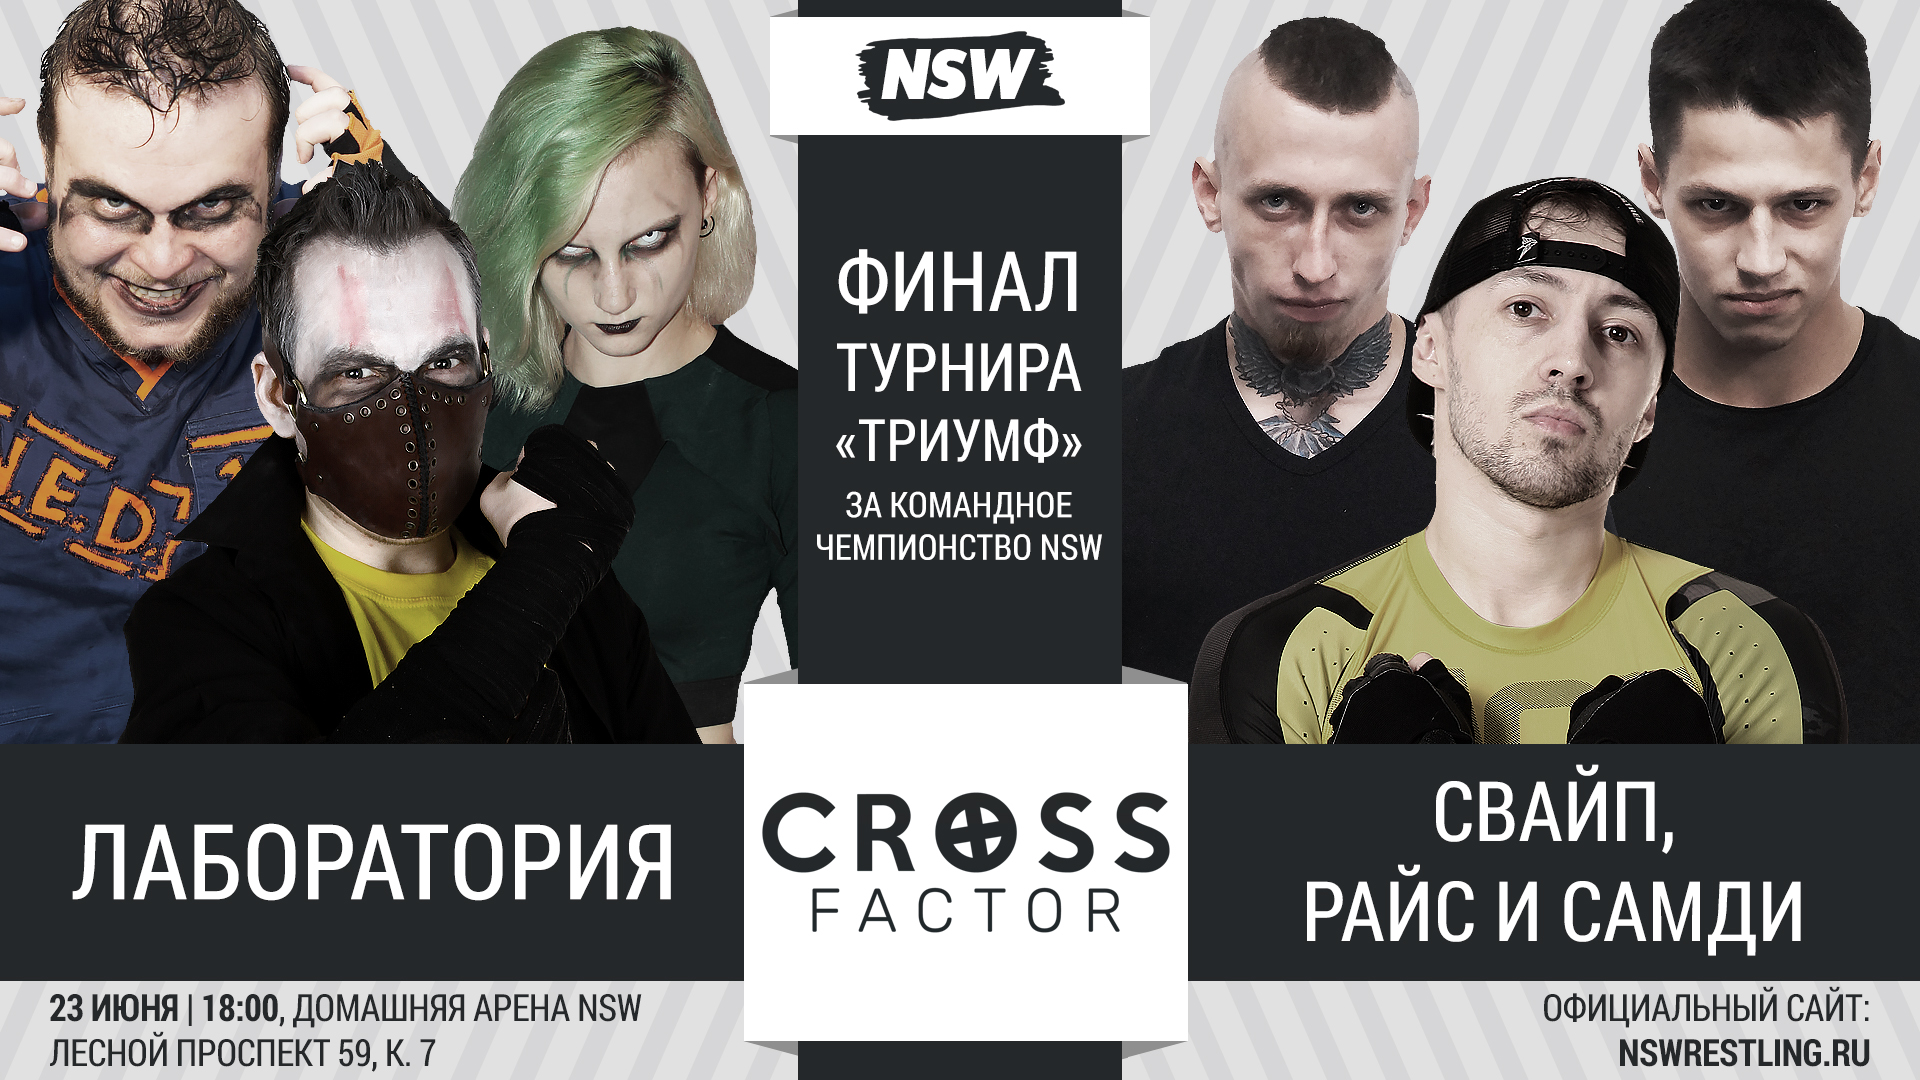 NSW Cross Factor (23/06): Лаборатория [Виктор Айзенхардт, НЭД и Литана] против Свайпа, Райса и Самди